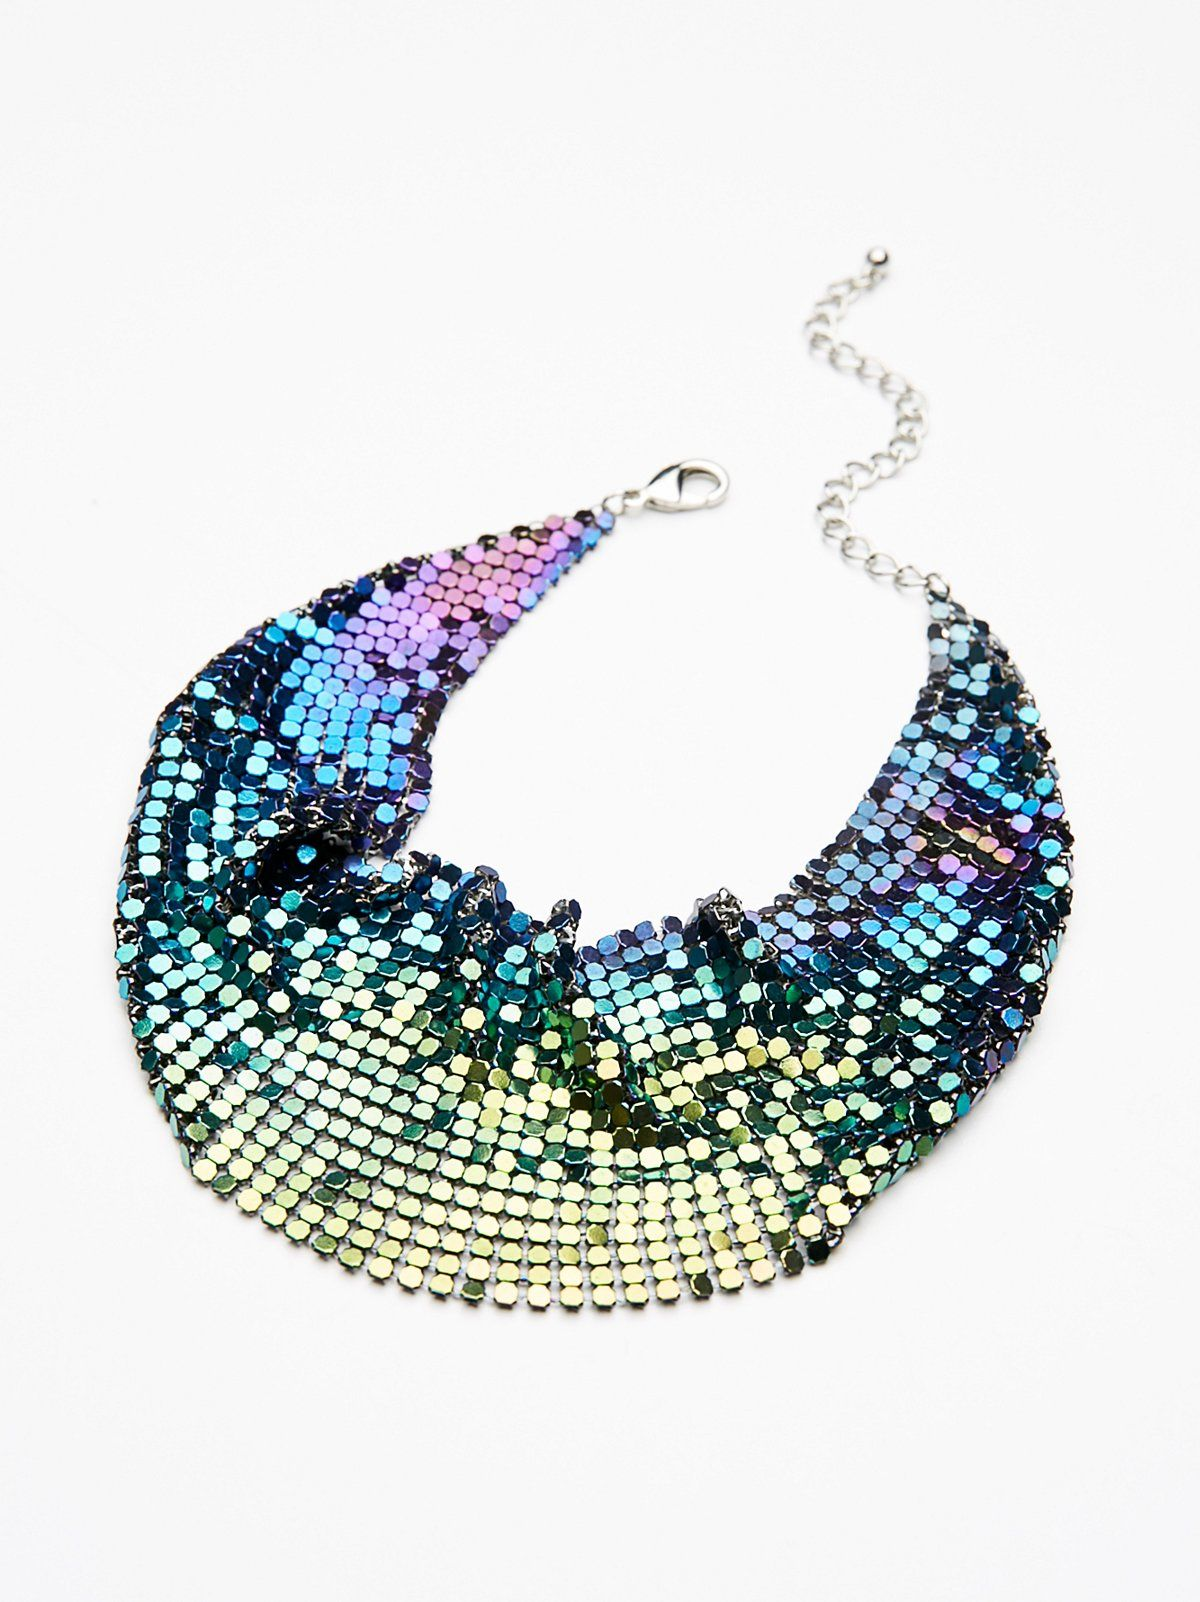 Mermaid Mirror Mirror Chainmail Choker at Free People Clothing Boutique